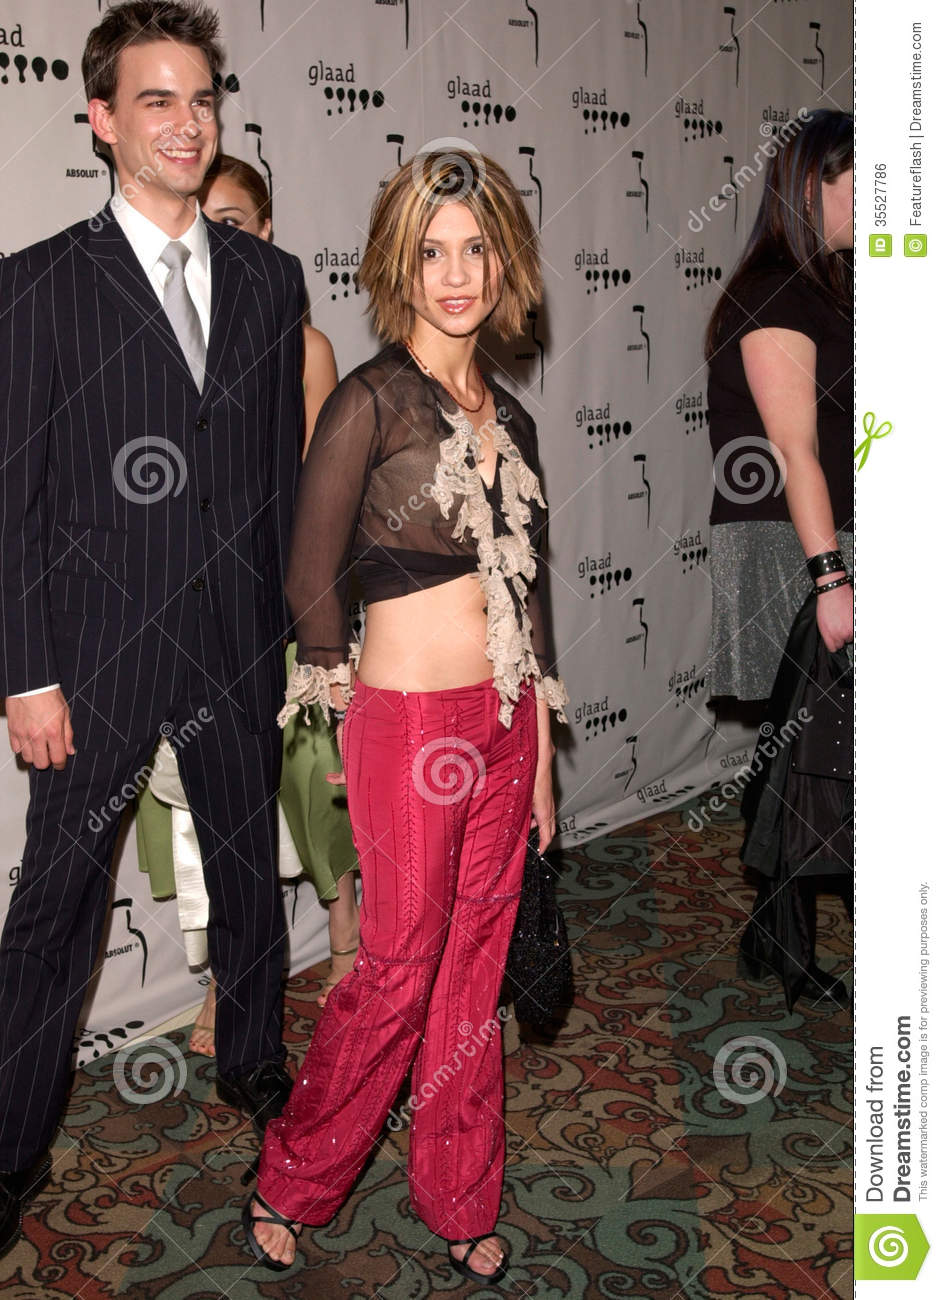 Actress TAMARA MELLO at the Gay & Lesbian Alliance Against Defamation ...: dreamstime.com/royalty-free-stock-image-tamara-mello-apr-actress...